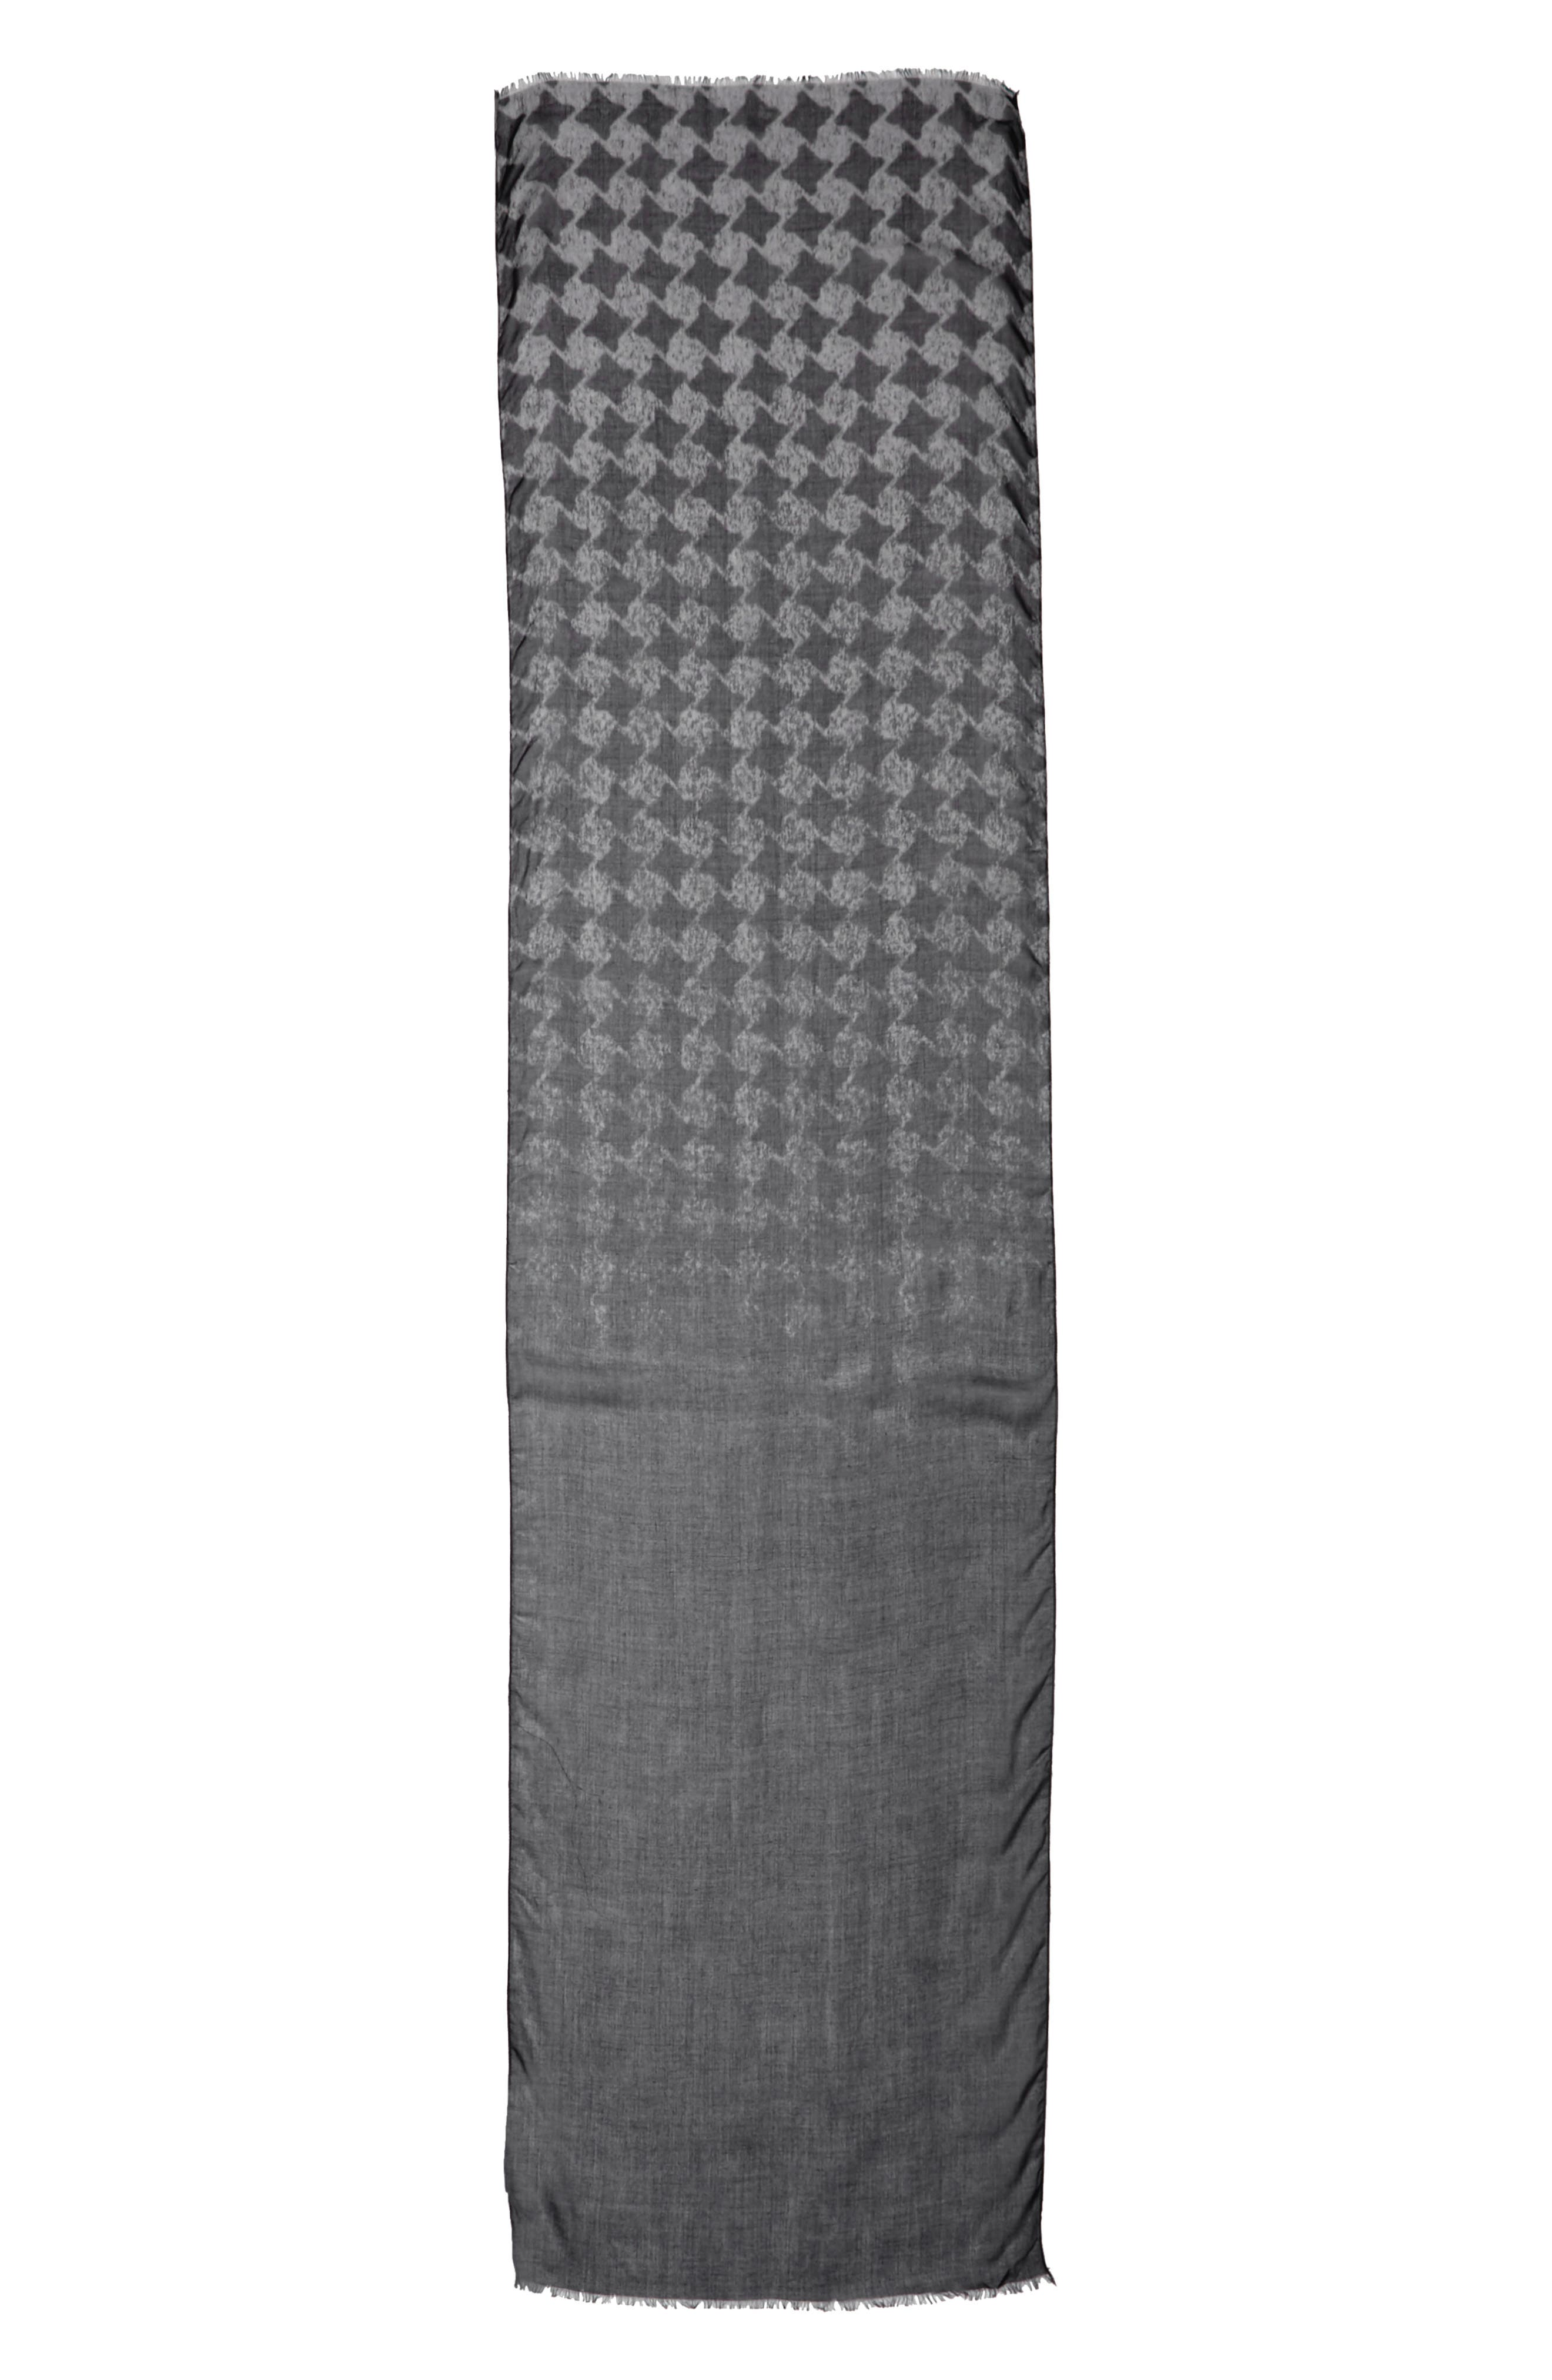 JOHN VARVATOS,                             Houndstooth Scarf,                             Alternate thumbnail 2, color,                             024